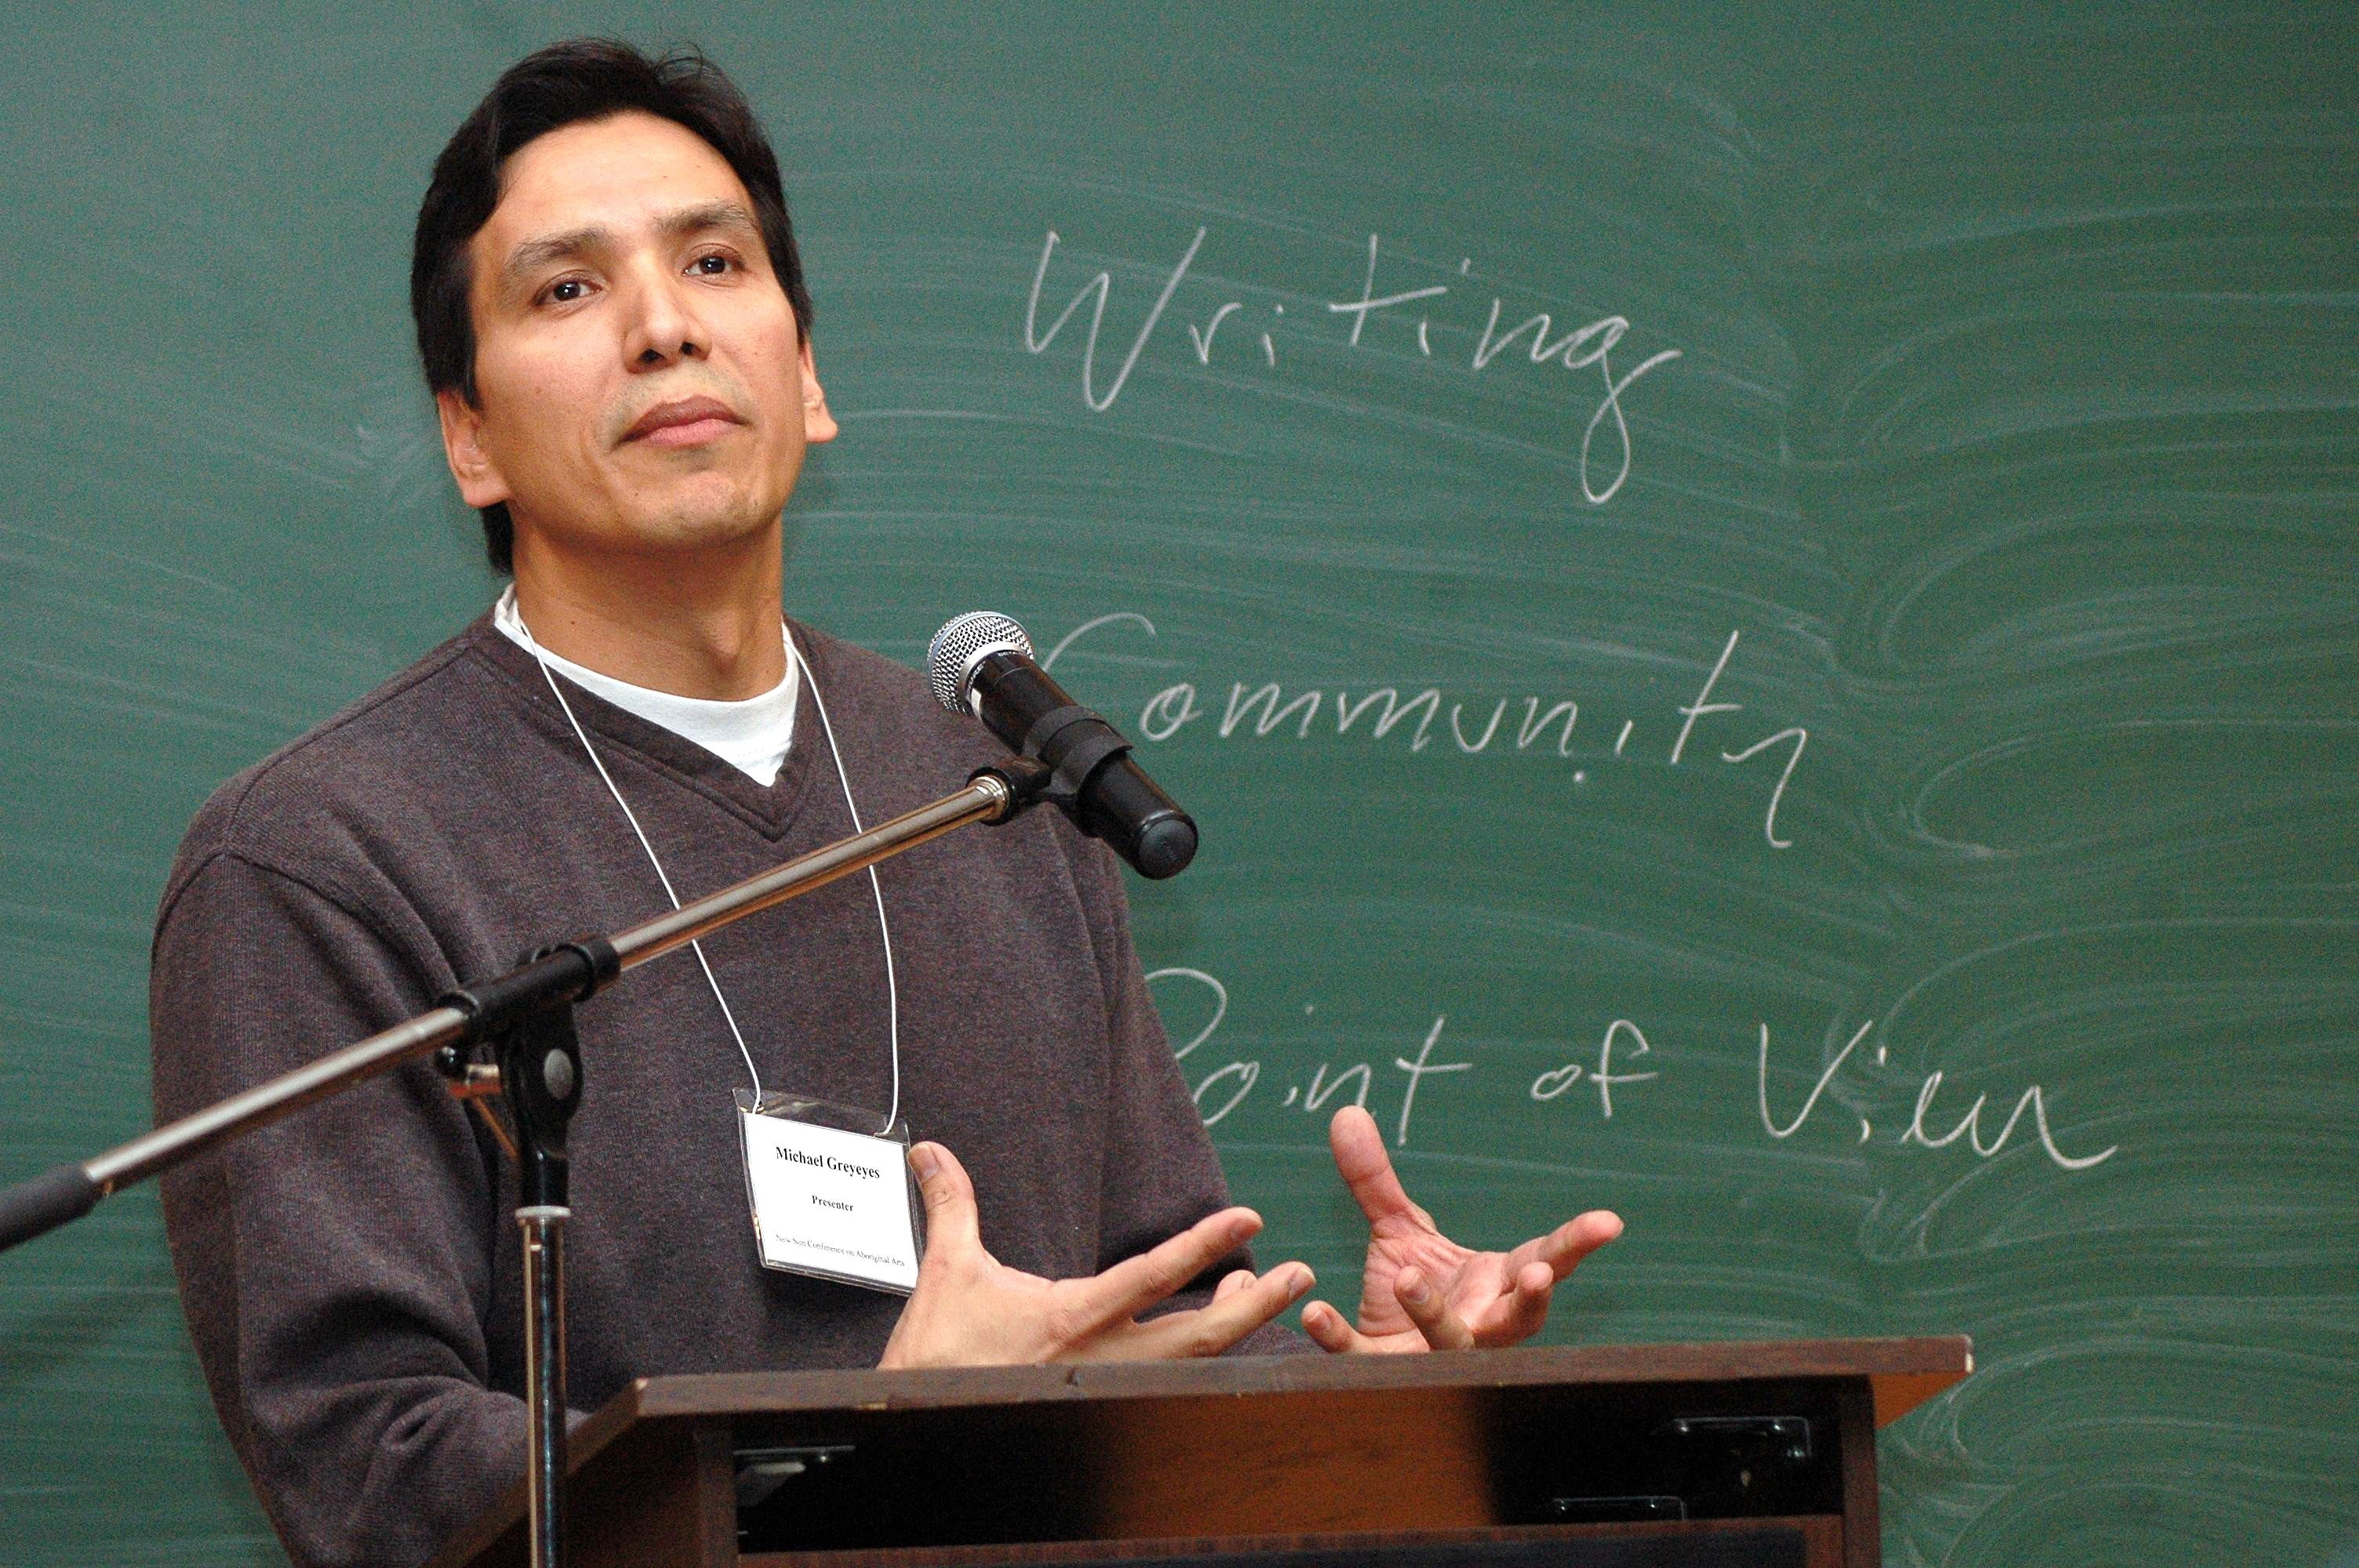 7th annual new sun conference on aboriginal arts reaching